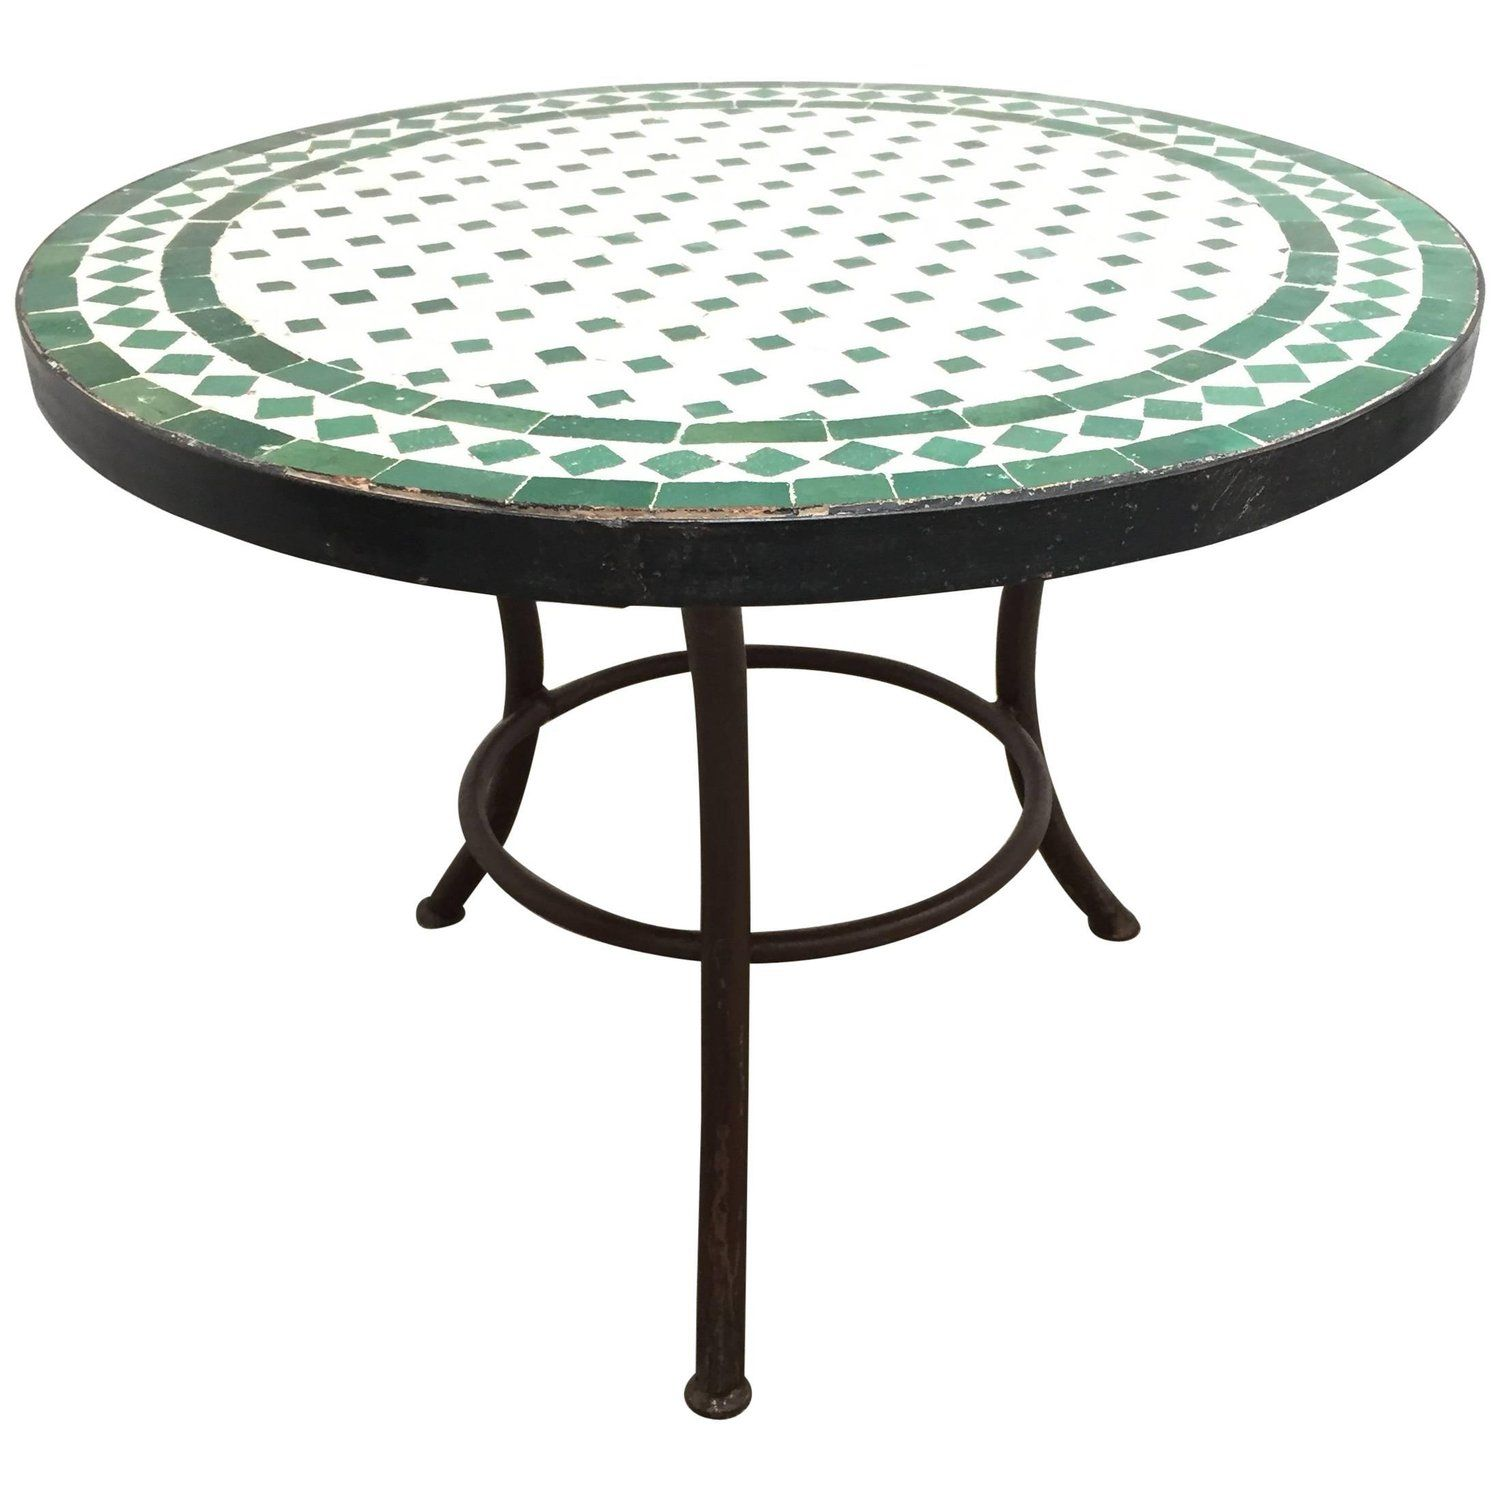 Moroccan Mosaic Tile Outdoor Side Table